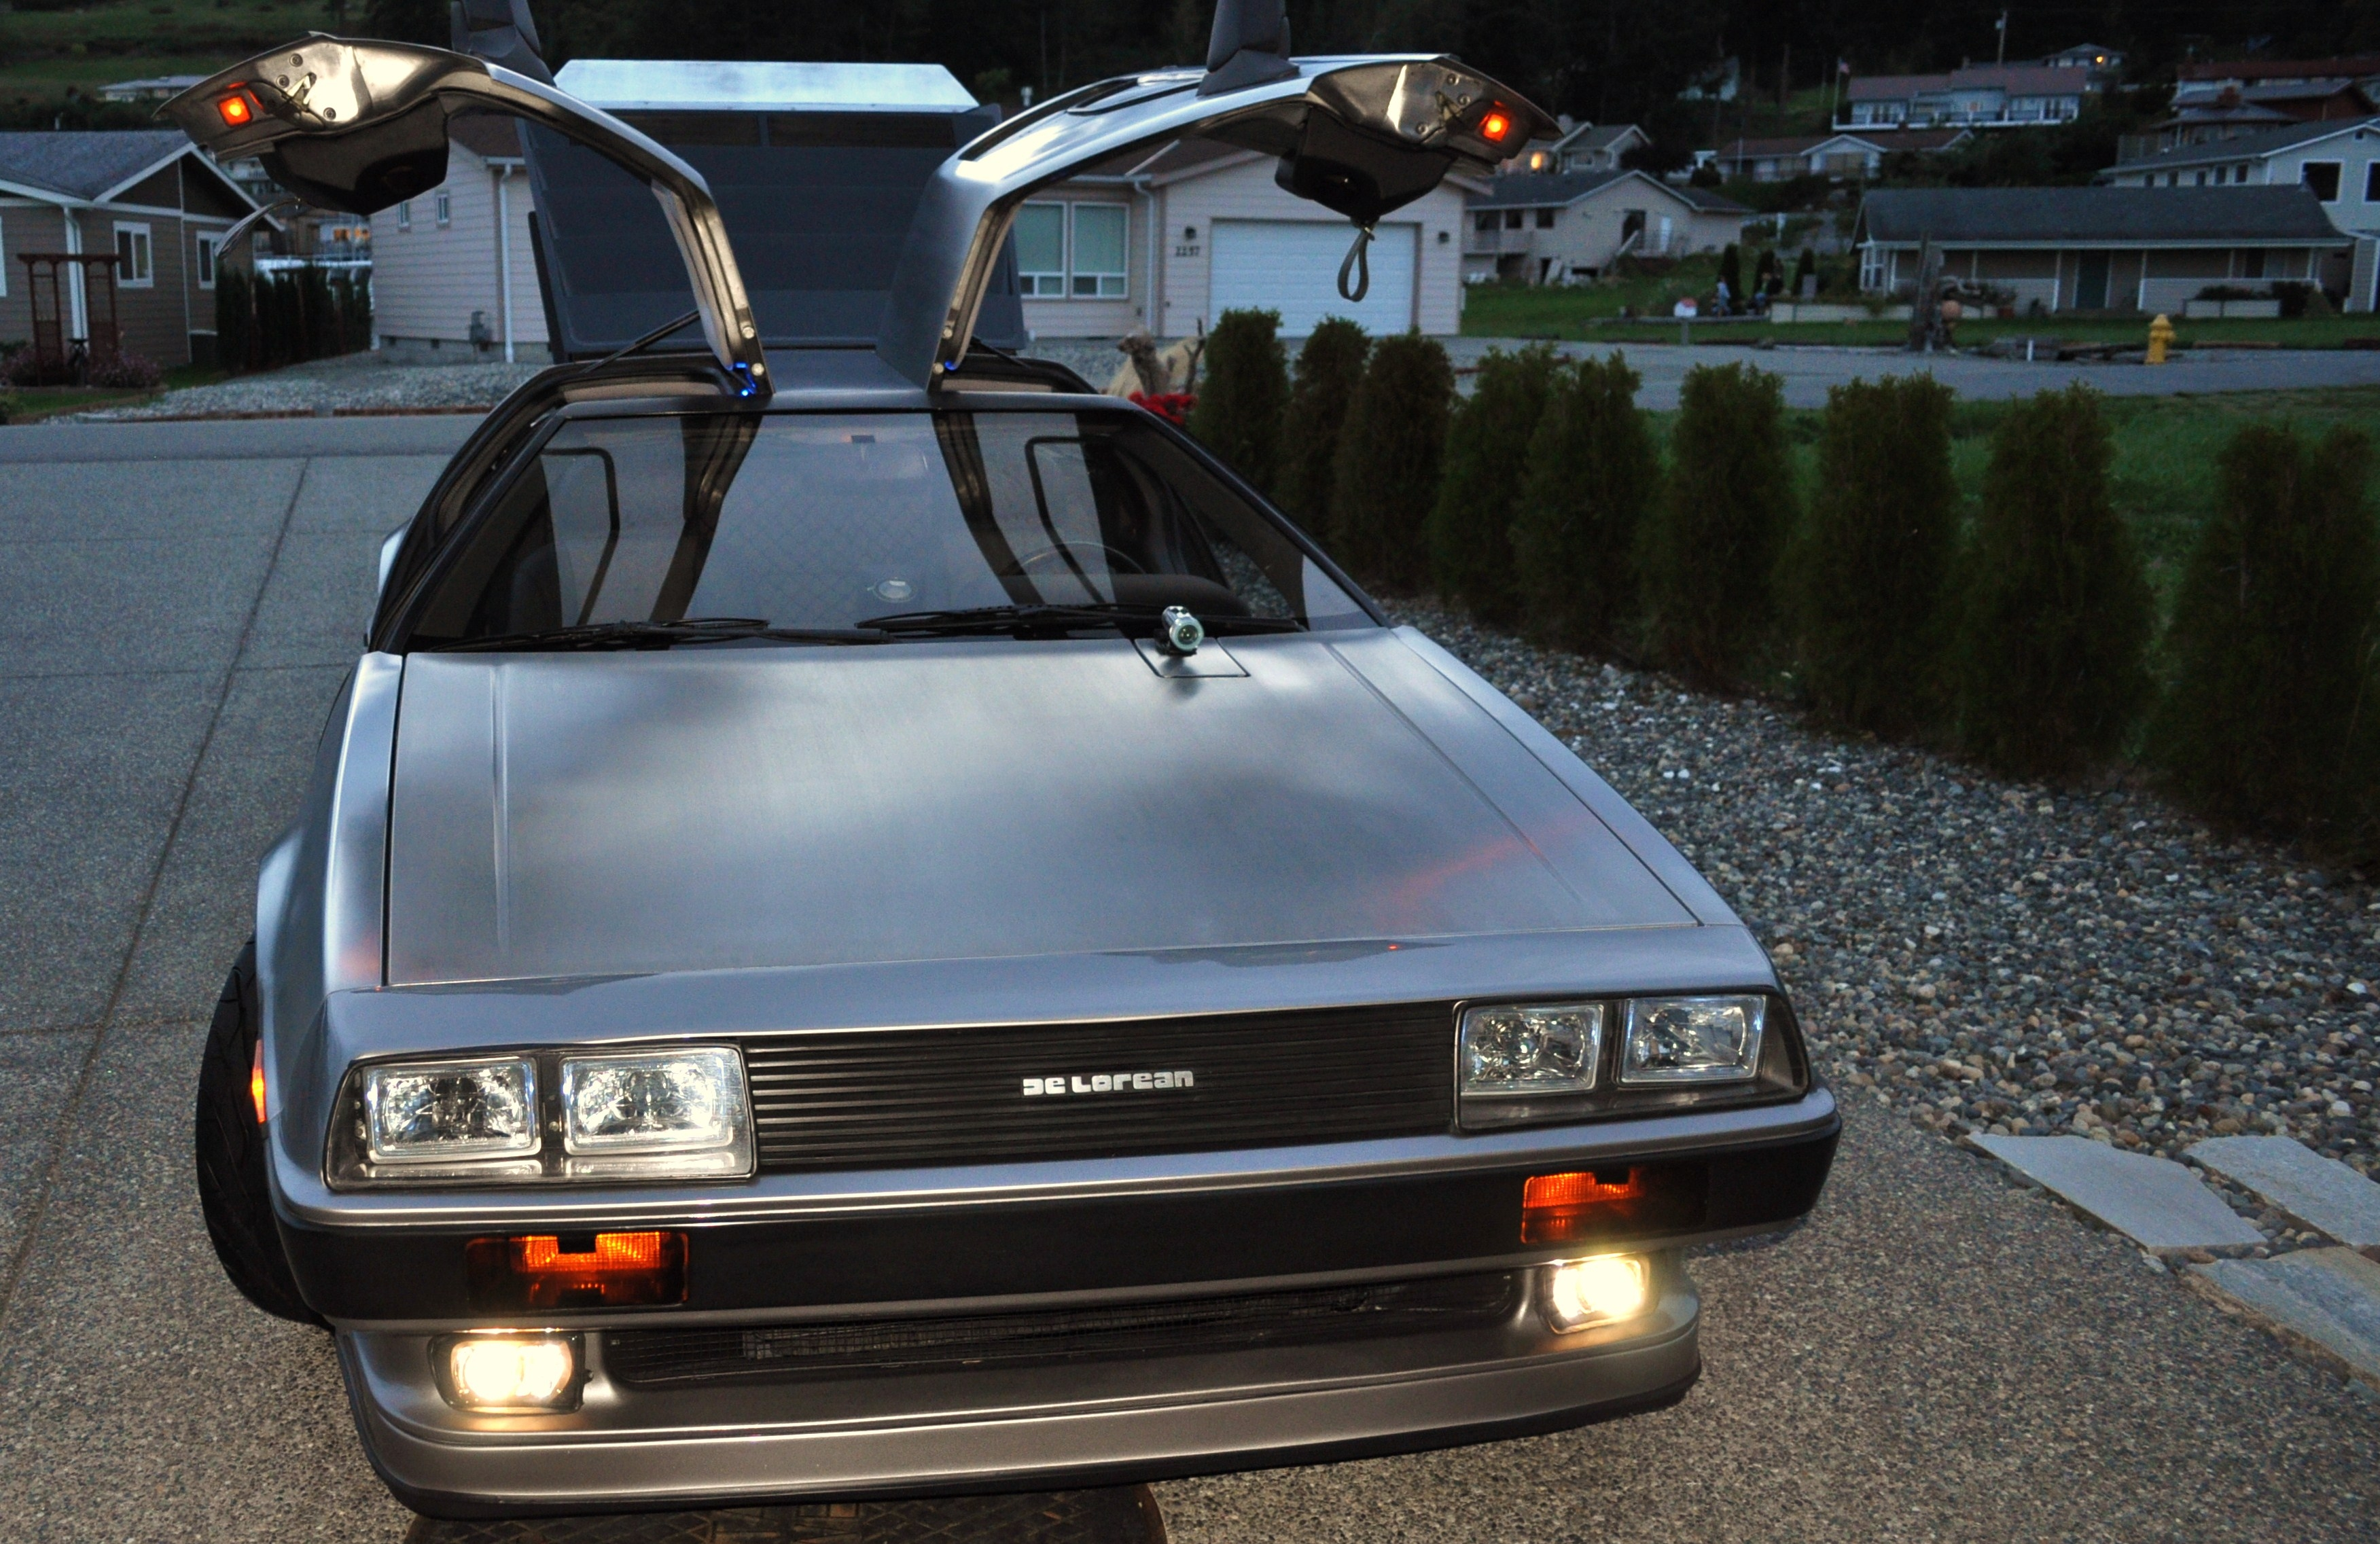 Delorean07 1981 DeLorean DMC-12 14812486